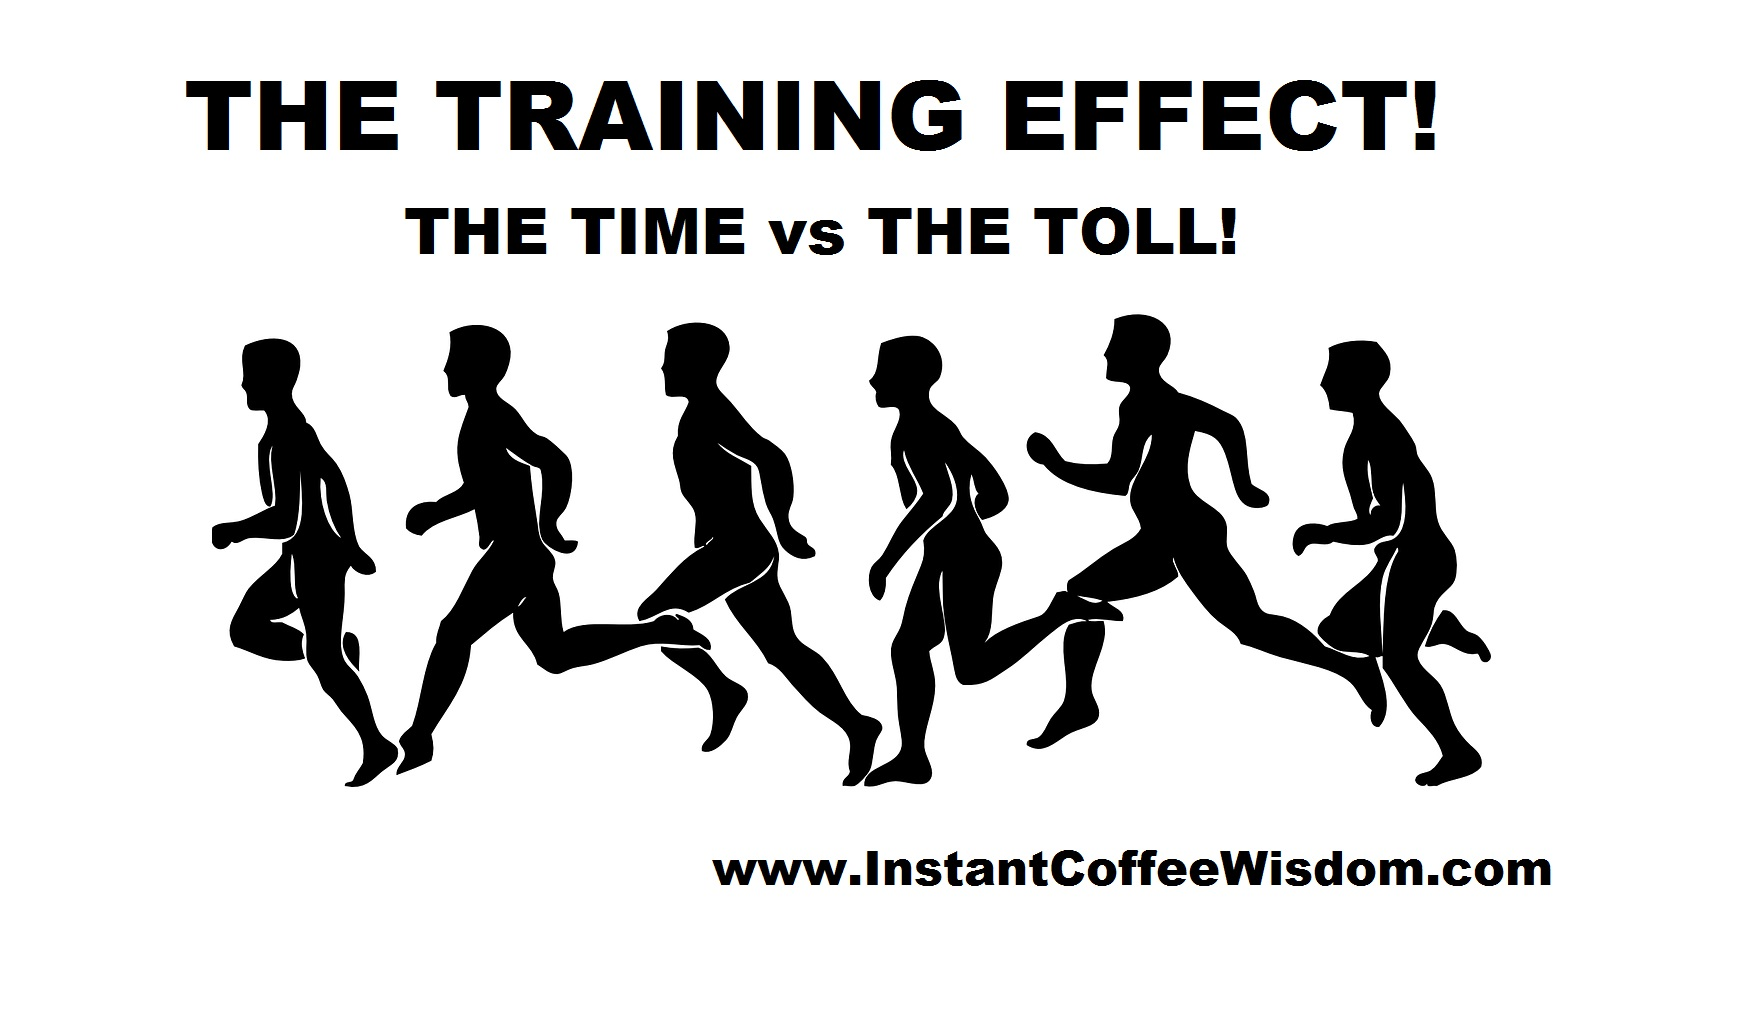 THE TRAINING EFFECT